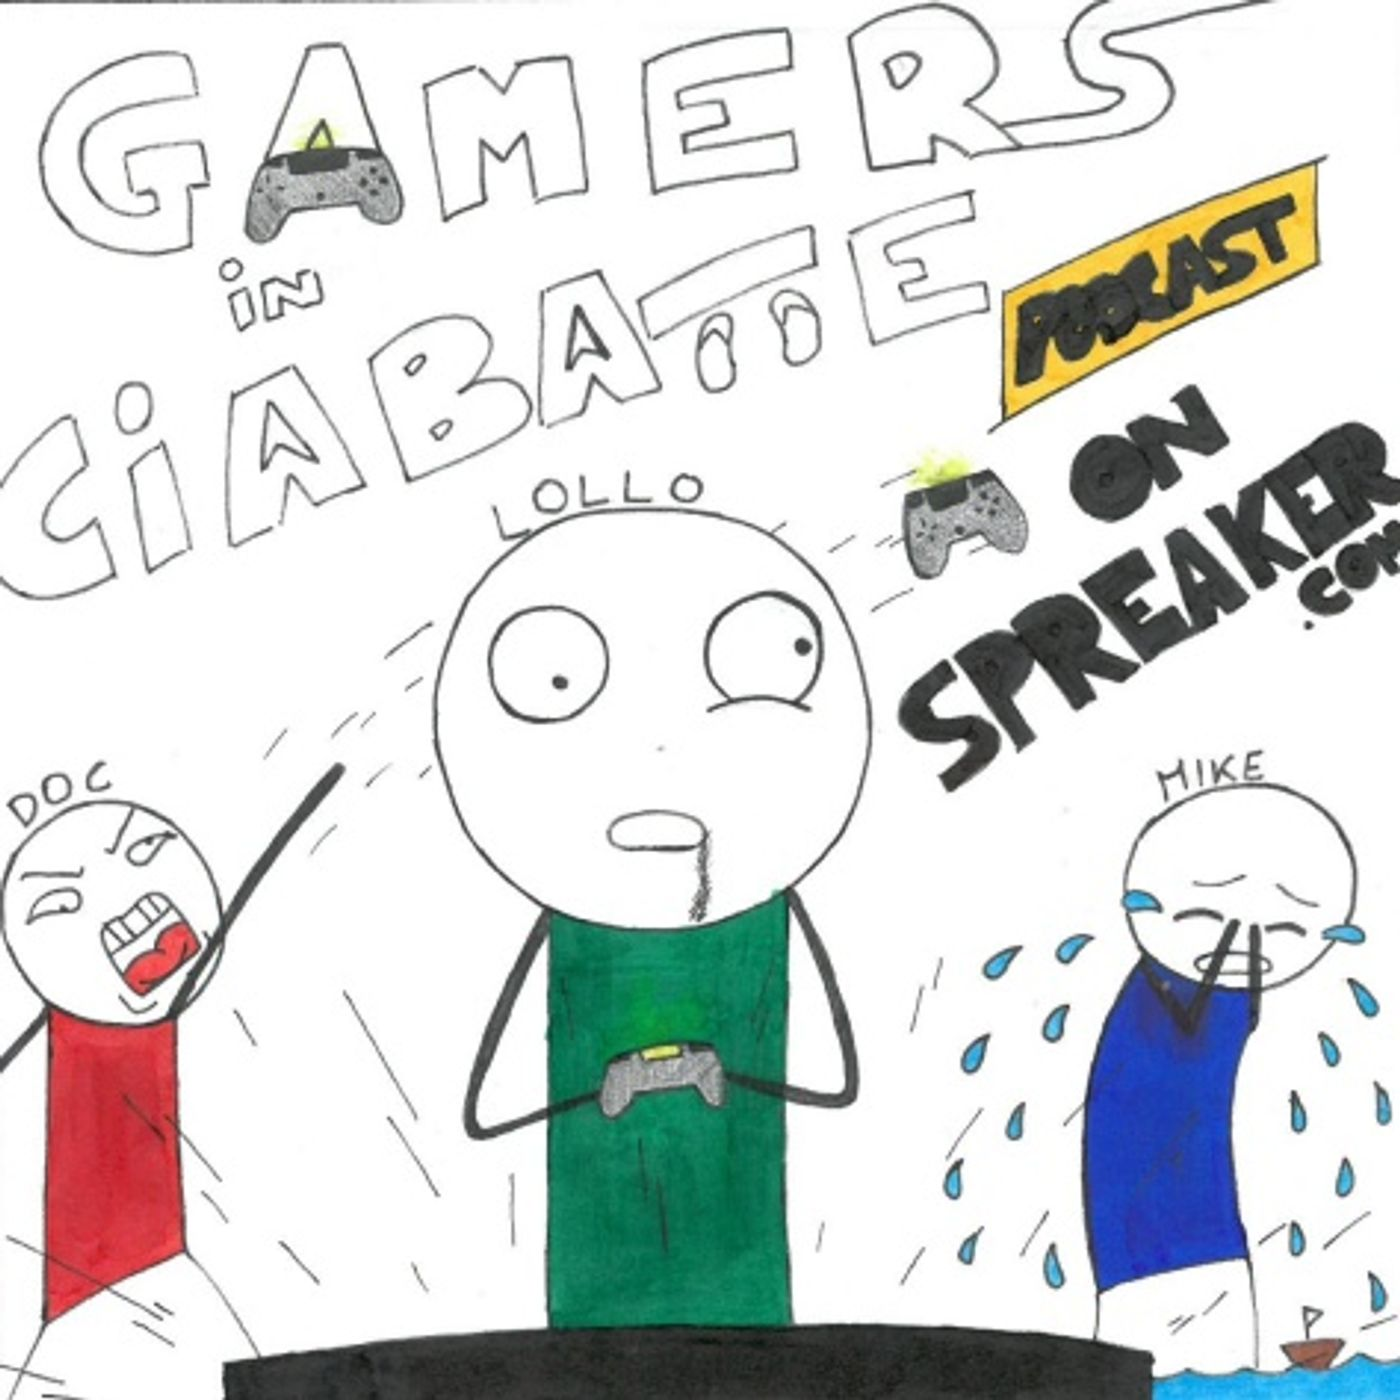 GAMERS IN CIABATTE